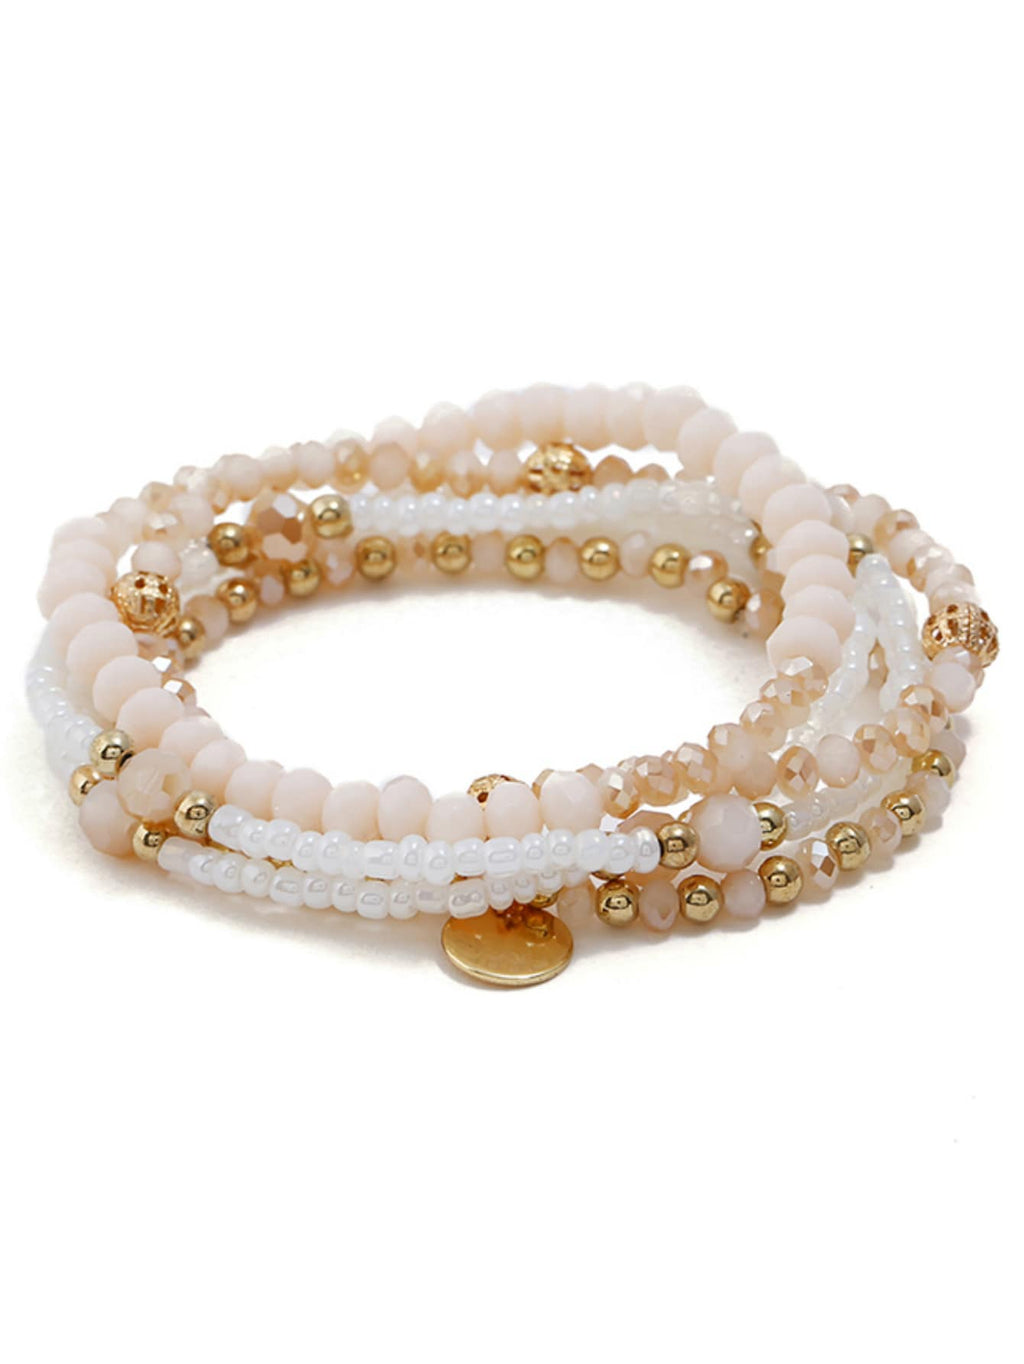 Beaded Bracelets - Disc Detail Beaded Bracelet Set 5pcs